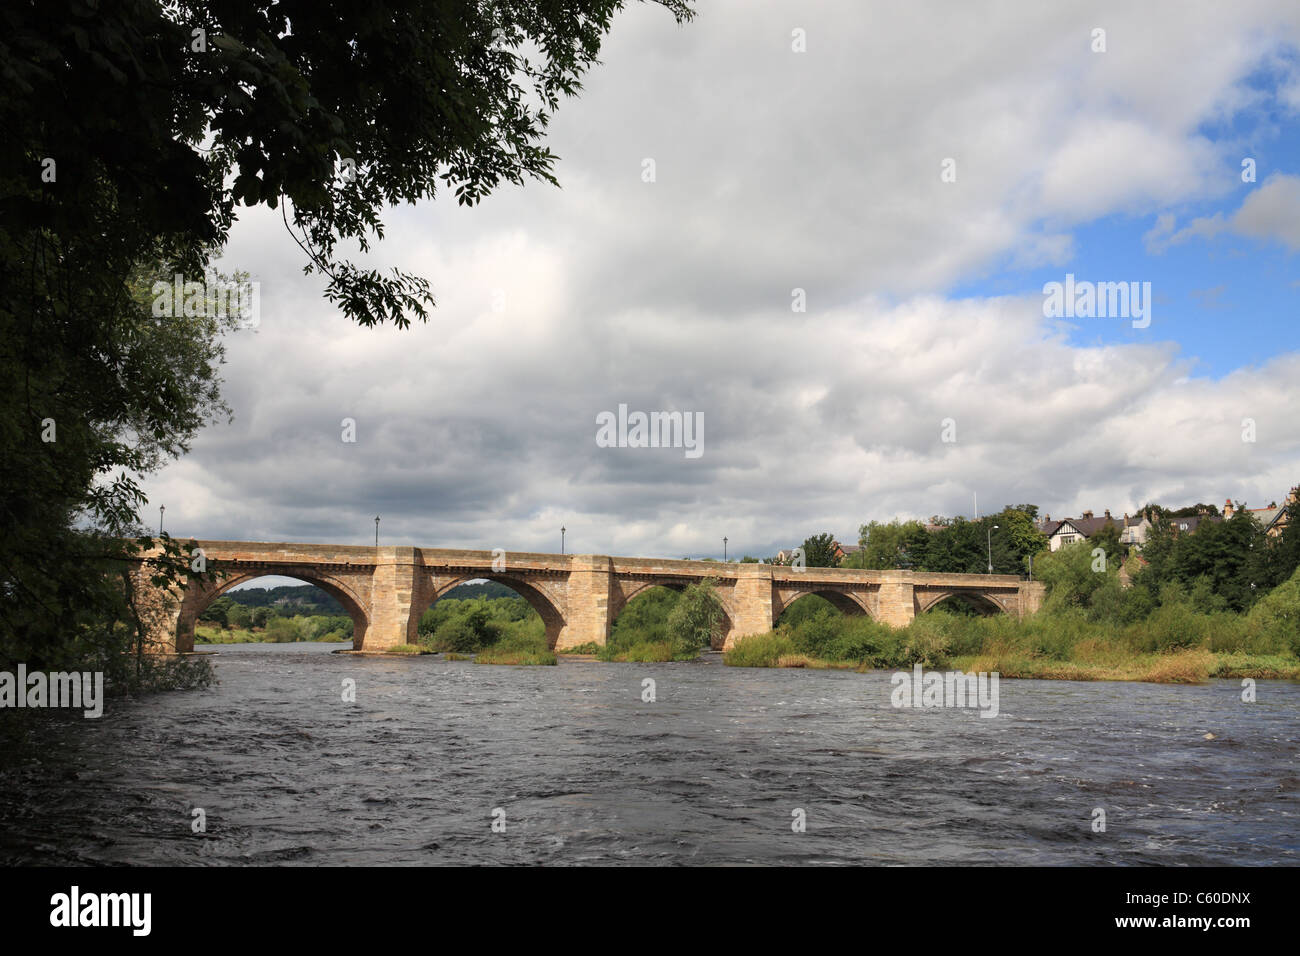 The 17th century seven arched stone bridge over the river Tyne at Corbridge, Northumberland, north east England, Stock Photo